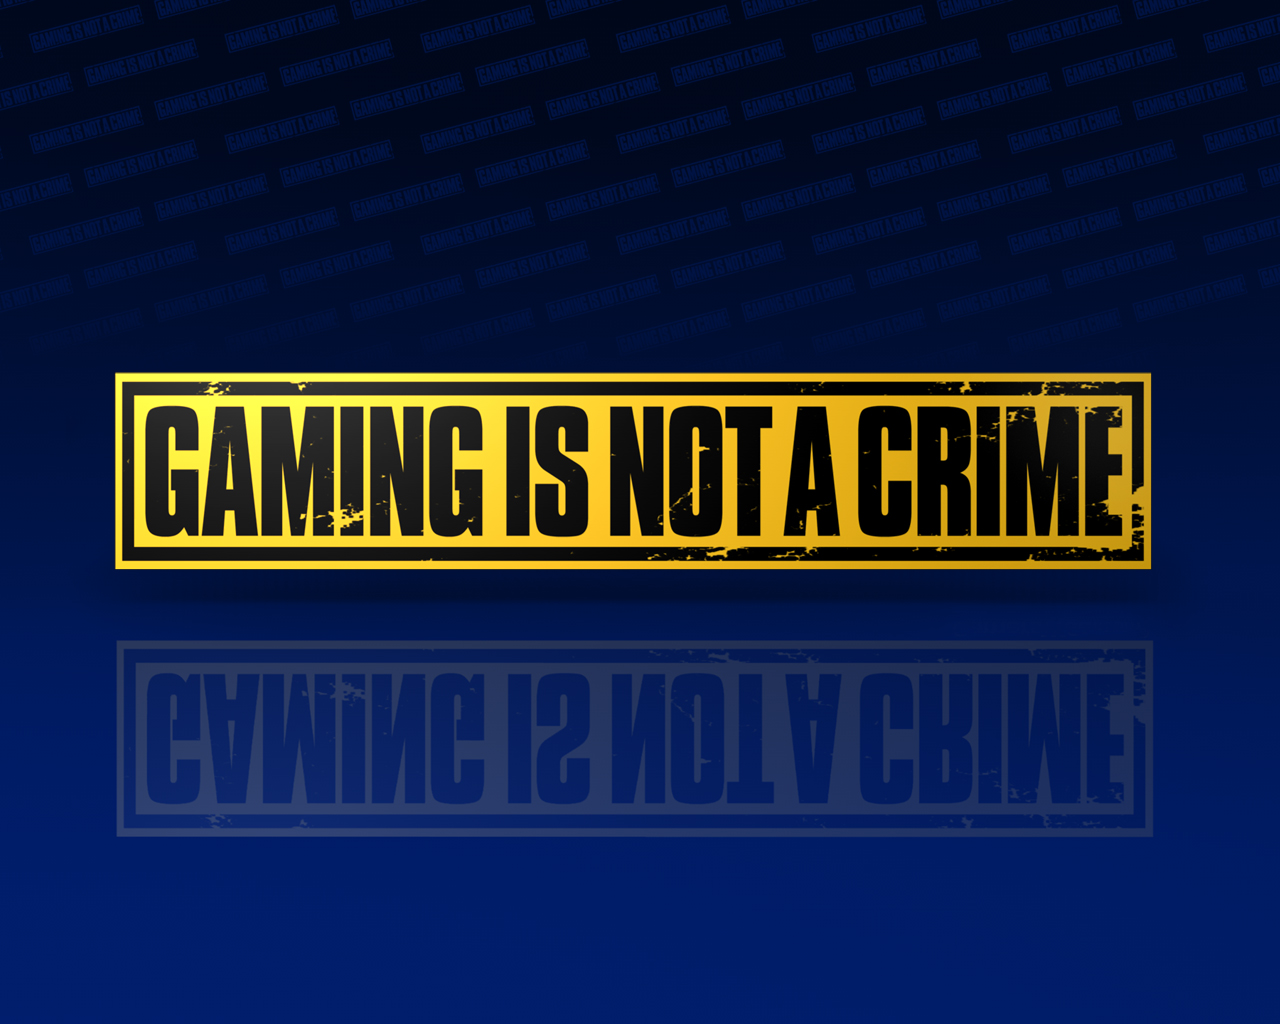 http://3.bp.blogspot.com/-SXweFSjPevo/UAOvx_RHoyI/AAAAAAAABI0/S7mwj08eWTc/s1600/gaming+is+not+a+crime+wallpaper+background+yellow+tape+blue.jpg